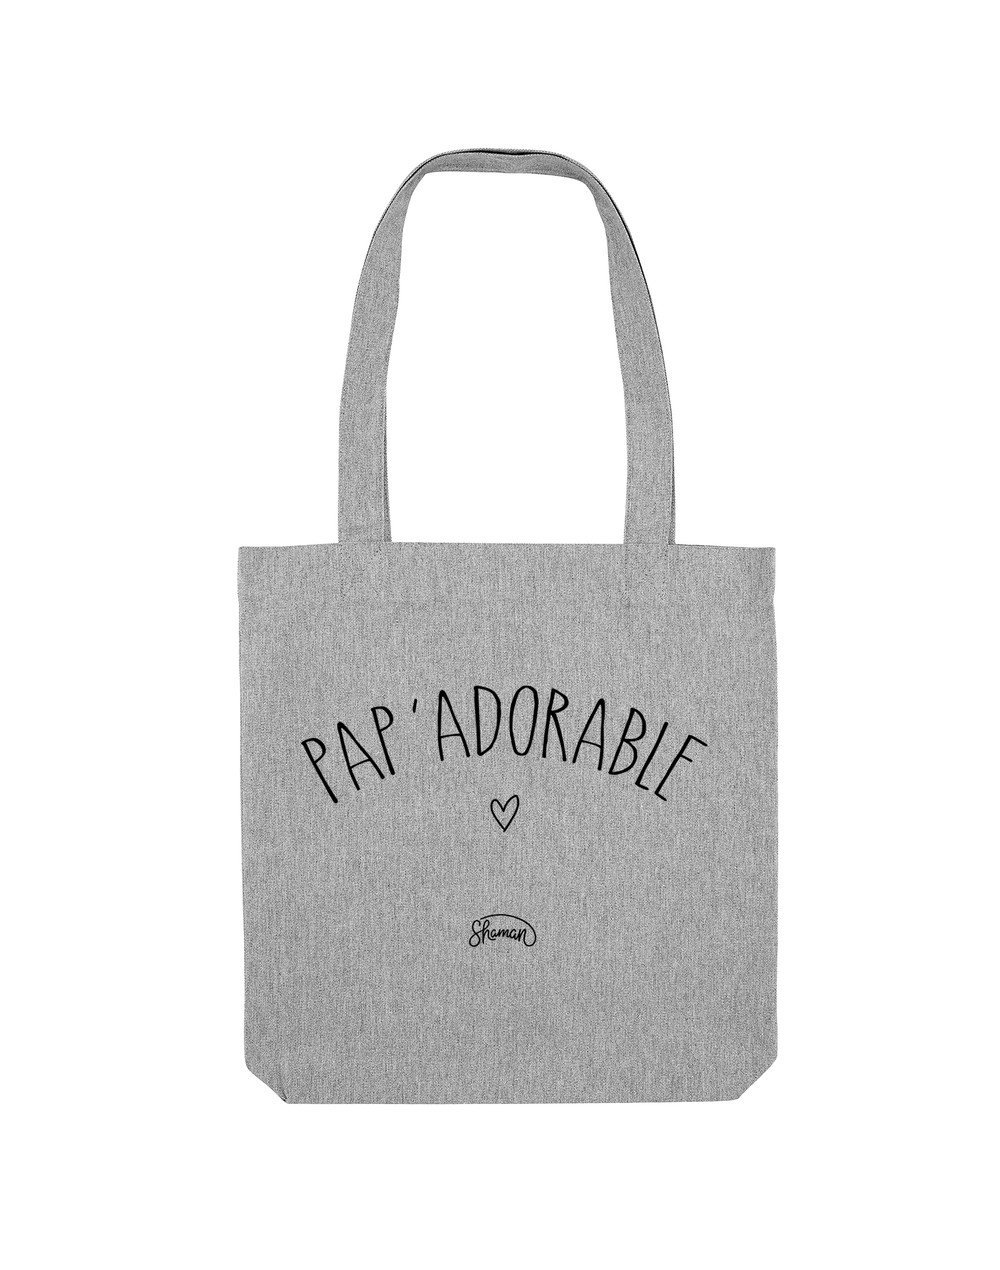 "Tote Bag ""papa'adorable"""